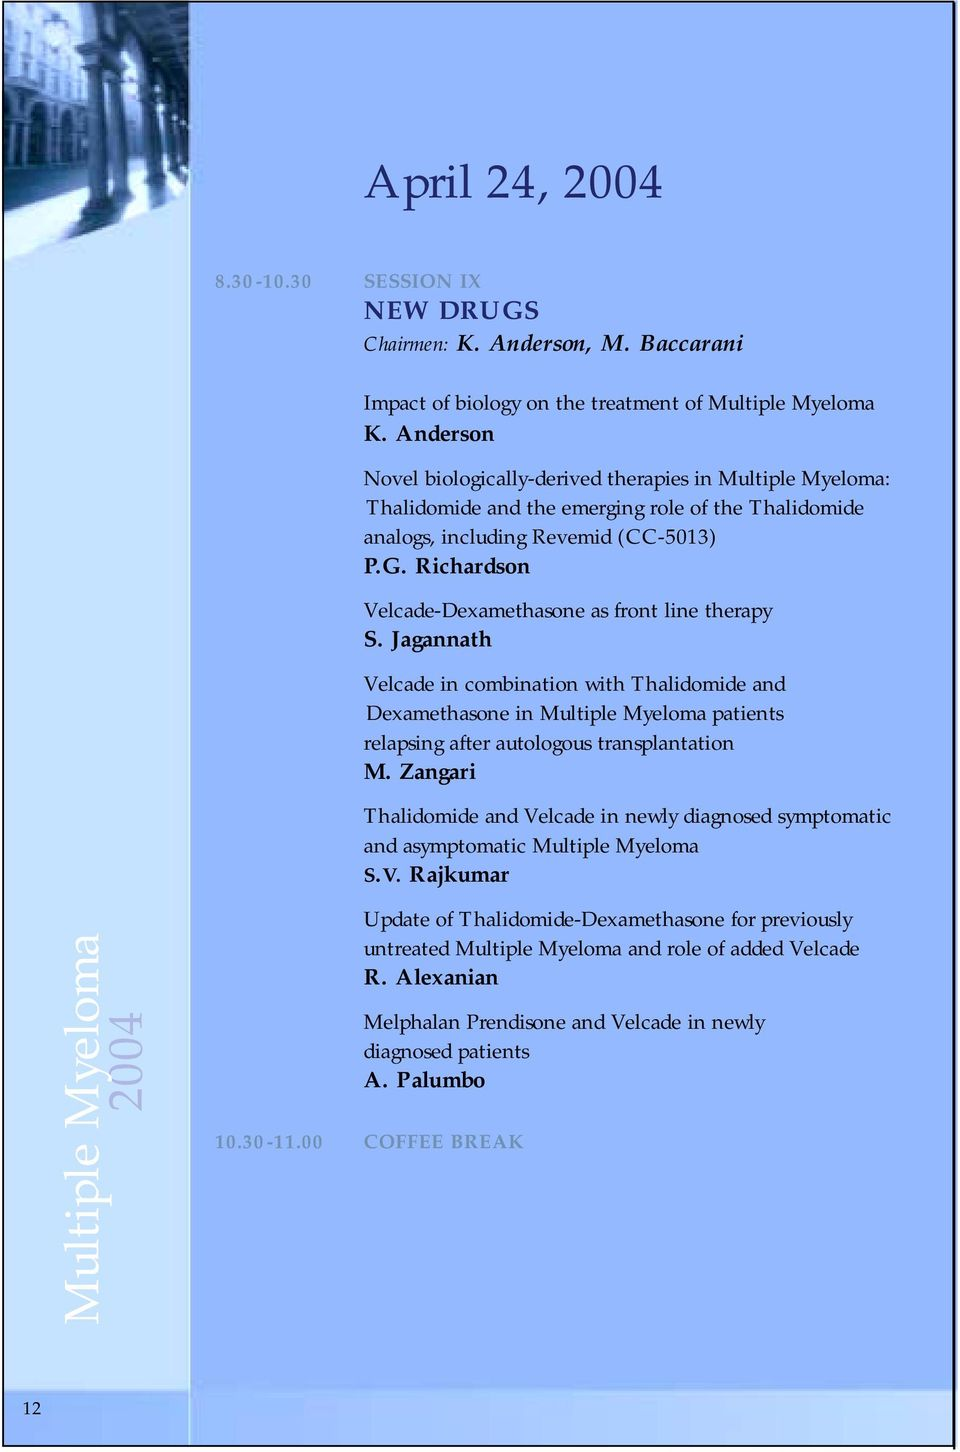 Richardson Velcade-Dexamethasone as front line therapy S. Jagannath Velcade in combination with Thalidomide and Dexamethasone in Multiple Myeloma patients relapsing after autologous transplantation M.